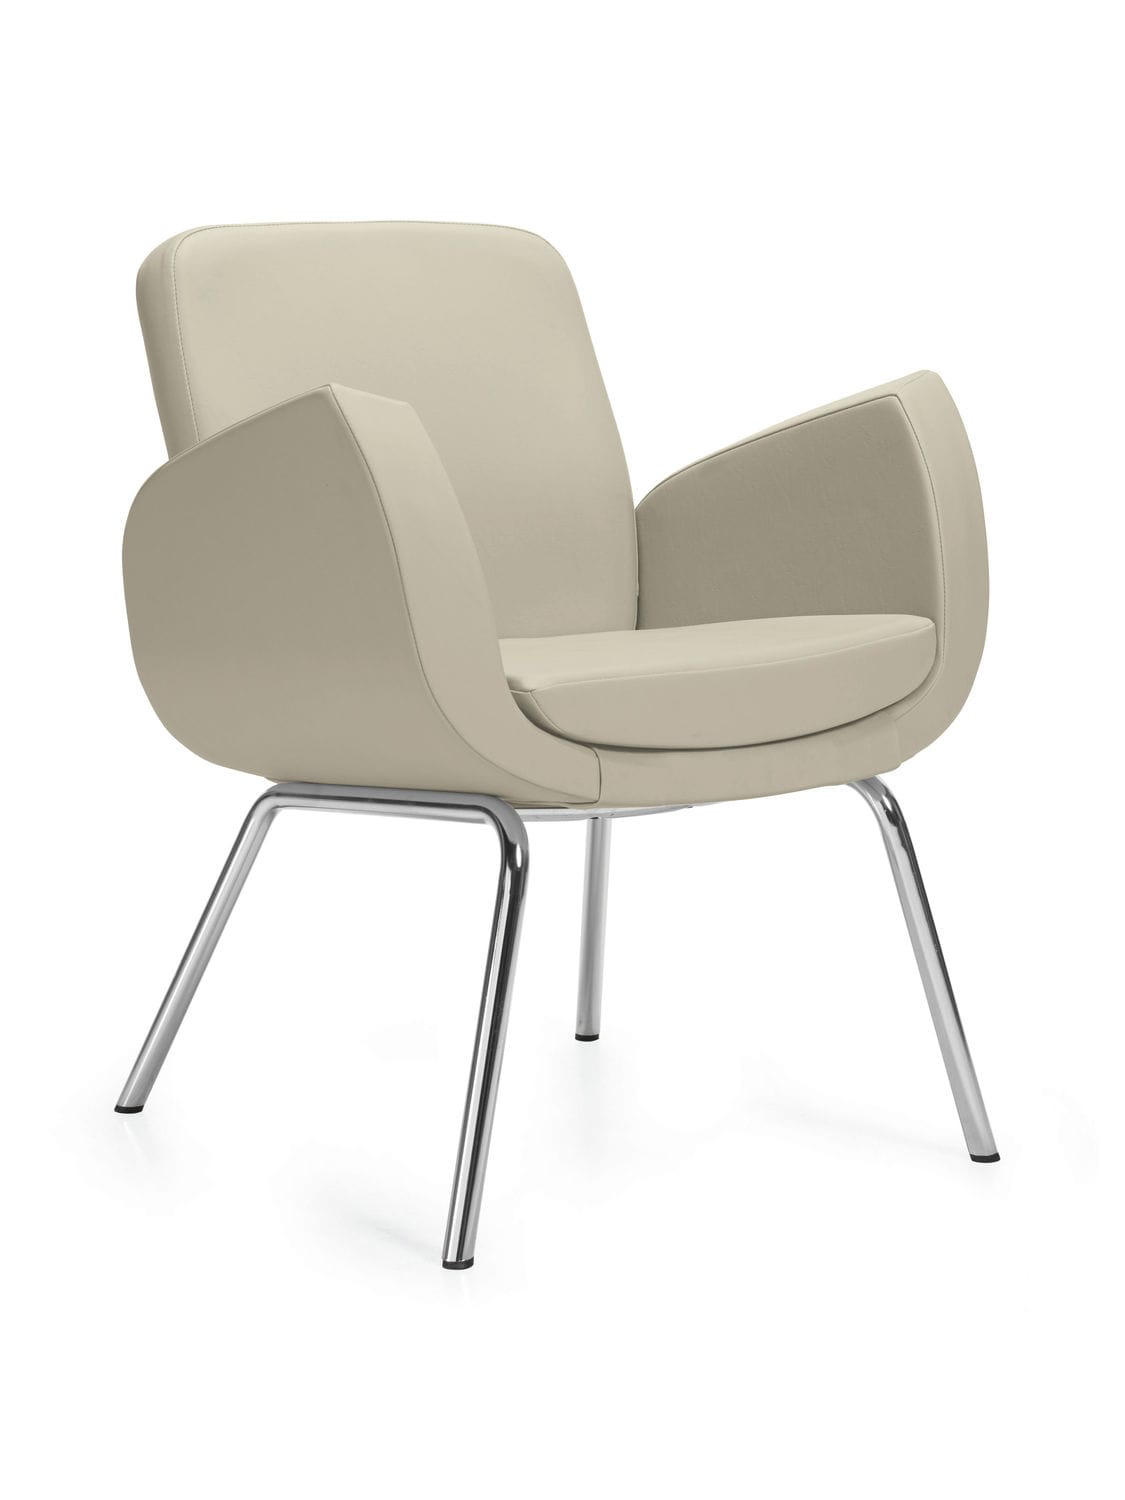 contemporary visitor chair  fabric  leather  with armrests  -  contemporary visitor chair  fabric  leather  with armrests kateglobal ad